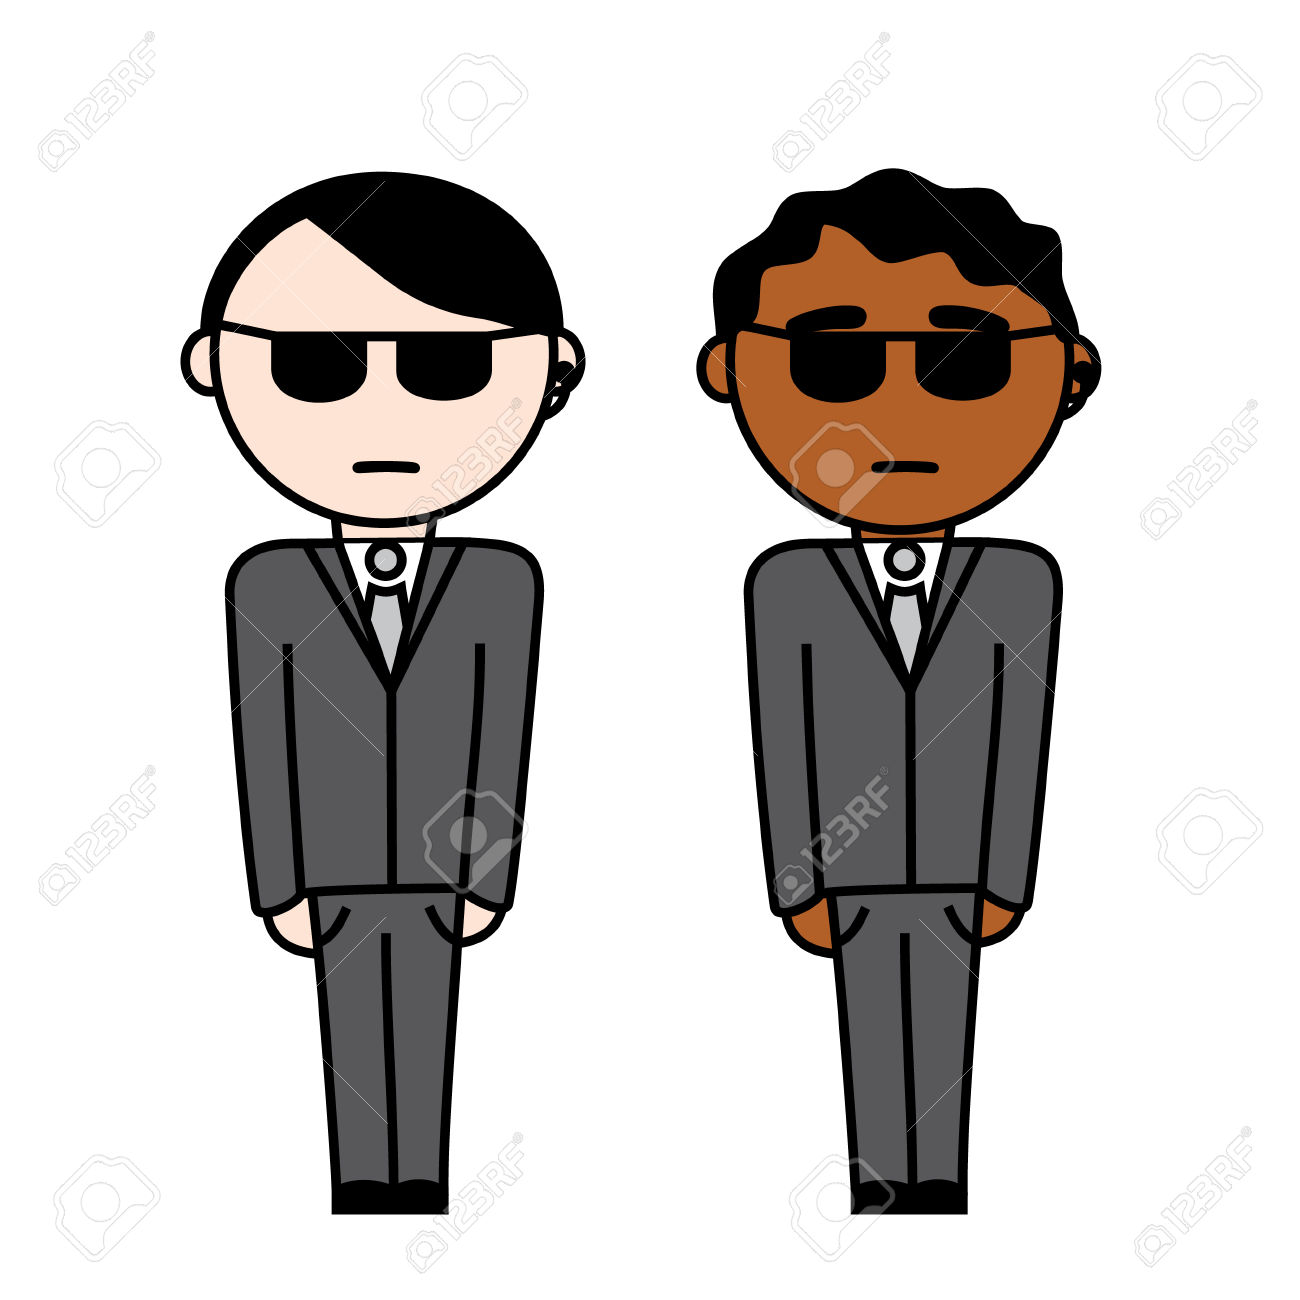 283 Fbi Agent Stock Vector Illustration And Royalty Free Fbi Agent.